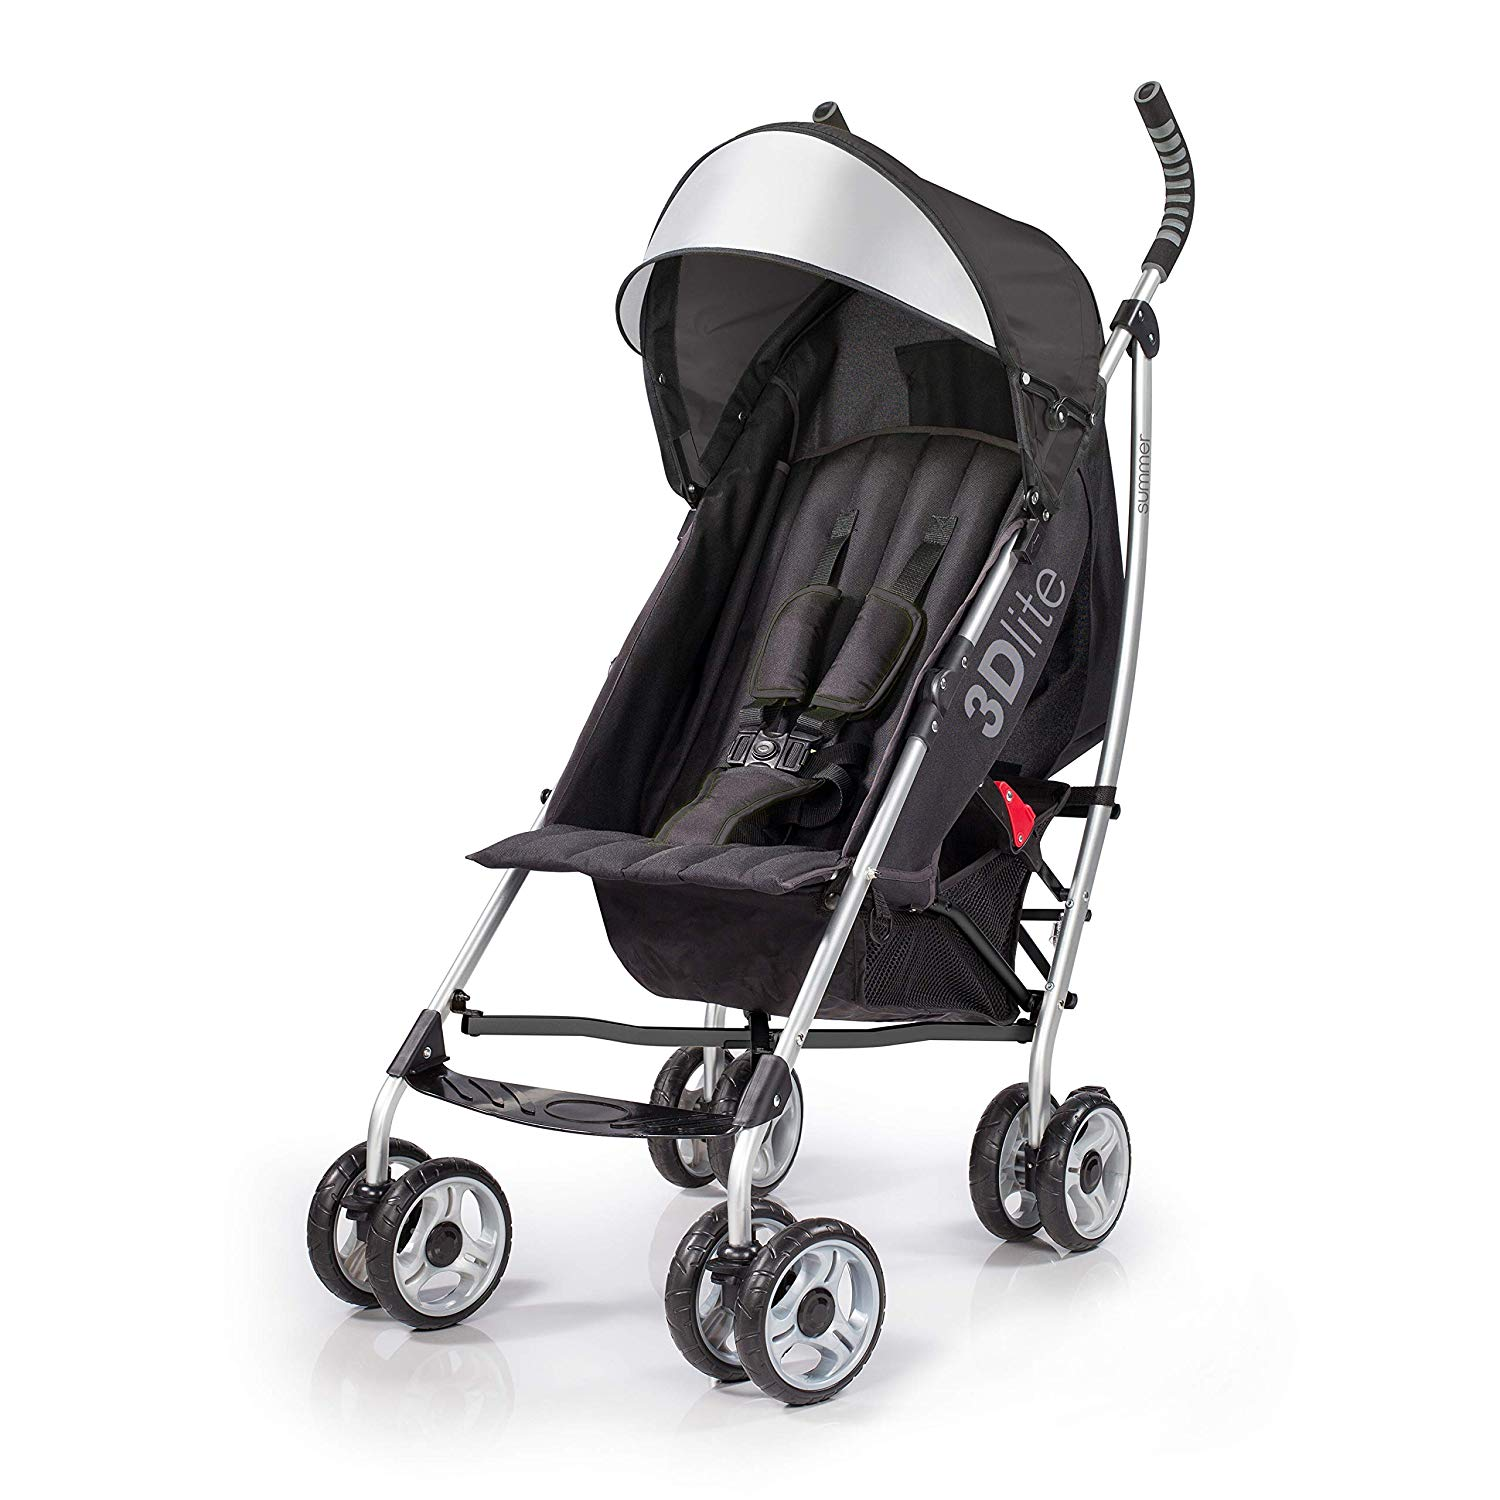 Stroller Connectors Turns Pushing Two Umbrella Strollers Into One